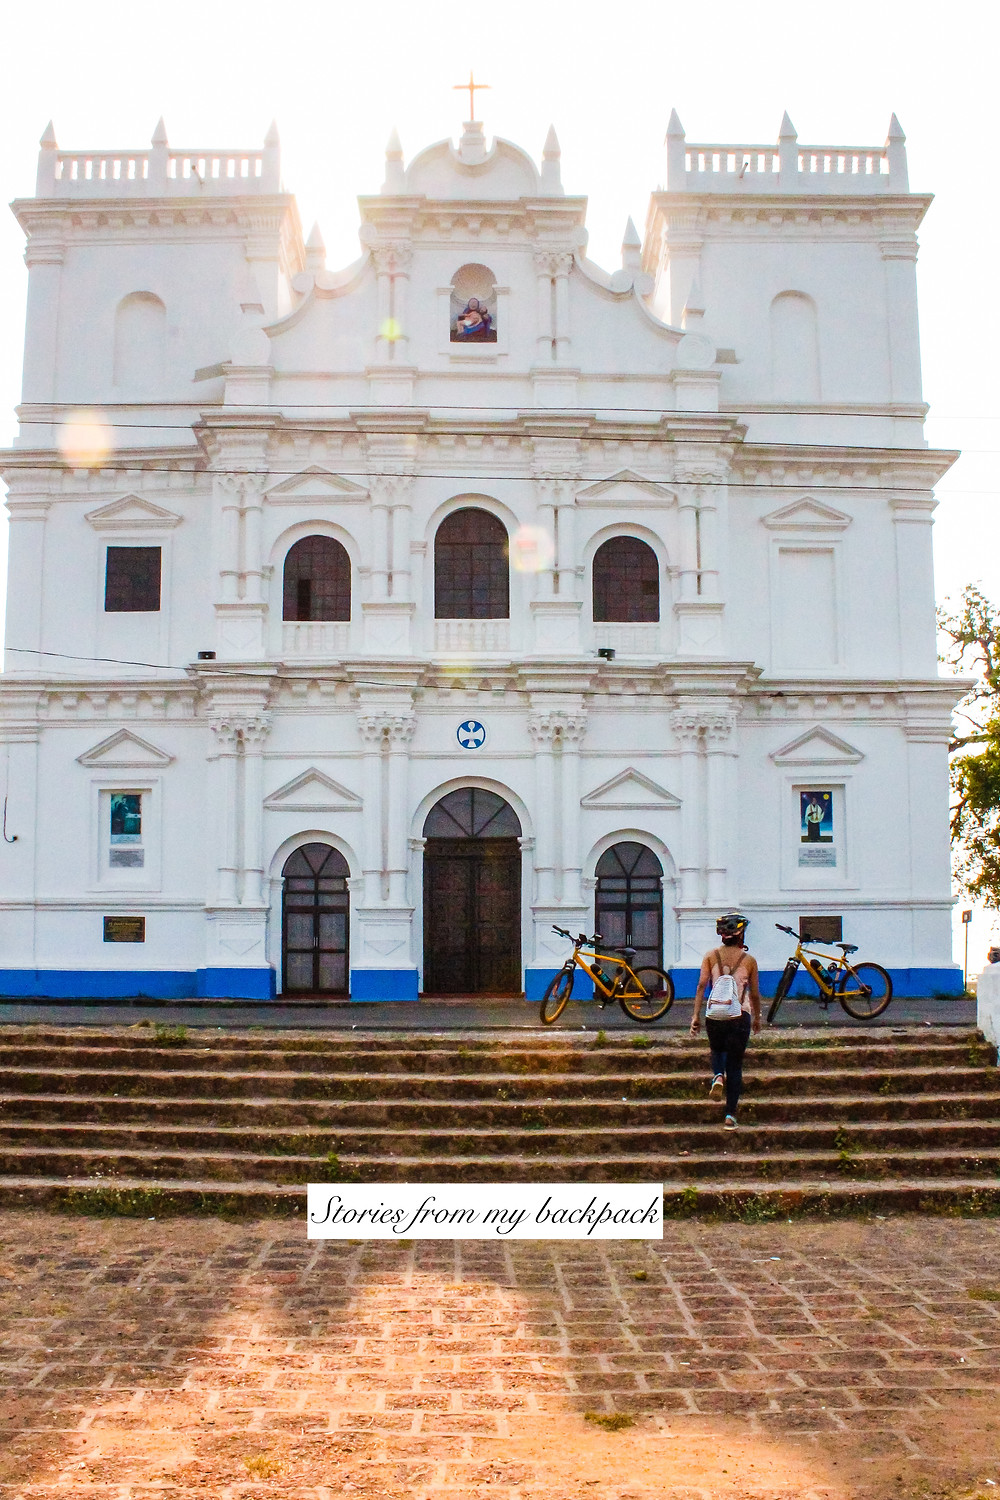 Churches of Goa, Our Lady of Piety Church, Divar island, Old Goa, churches of Old Goa, UNESCO World Heritage site, things to do in Divar island, accommodation in Divar island, unseen Goa, unexplored Goa, Real Goa